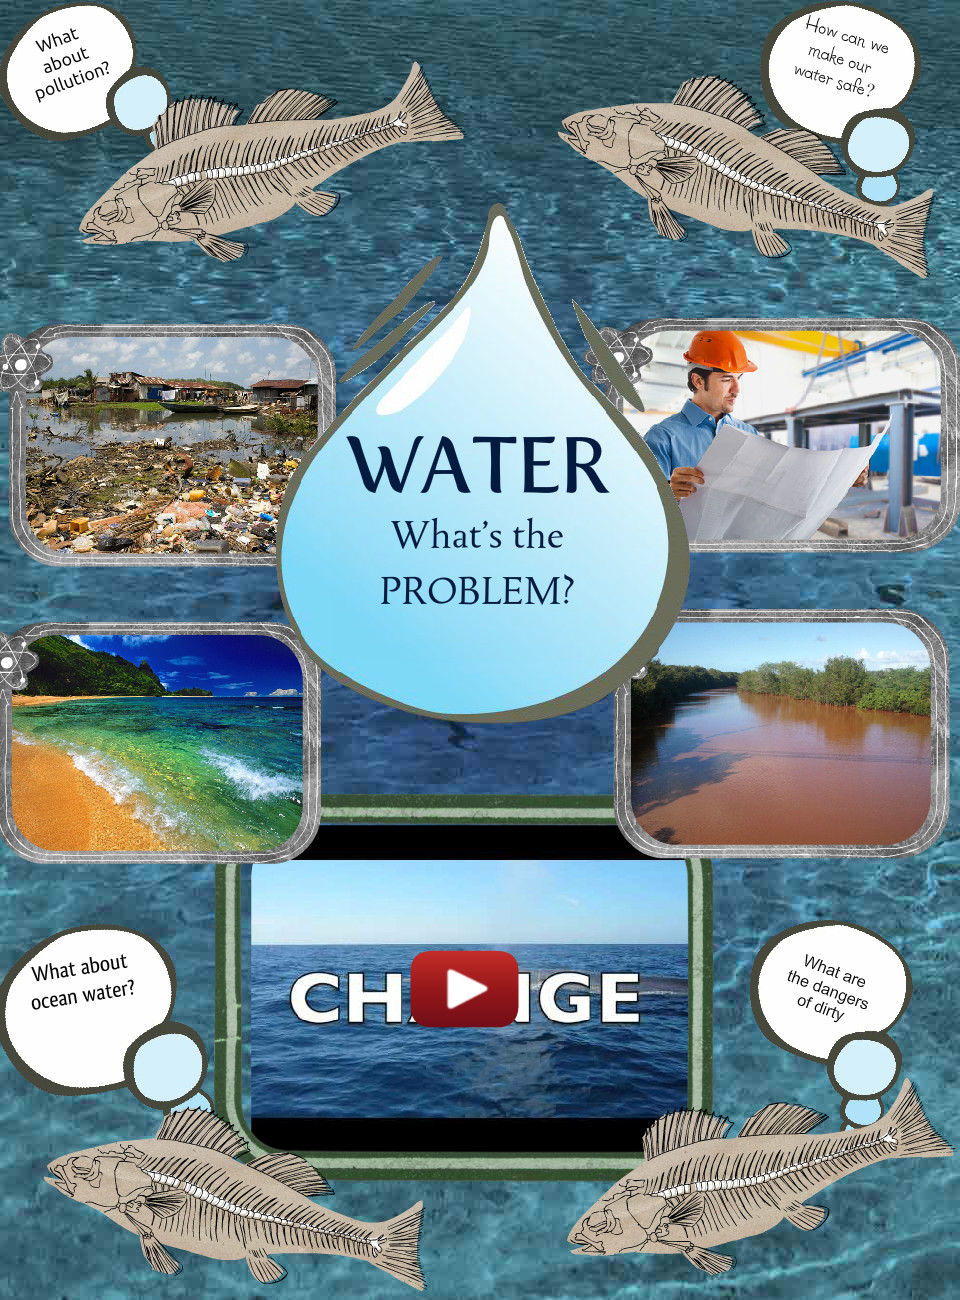 WATER - What's the Problem?